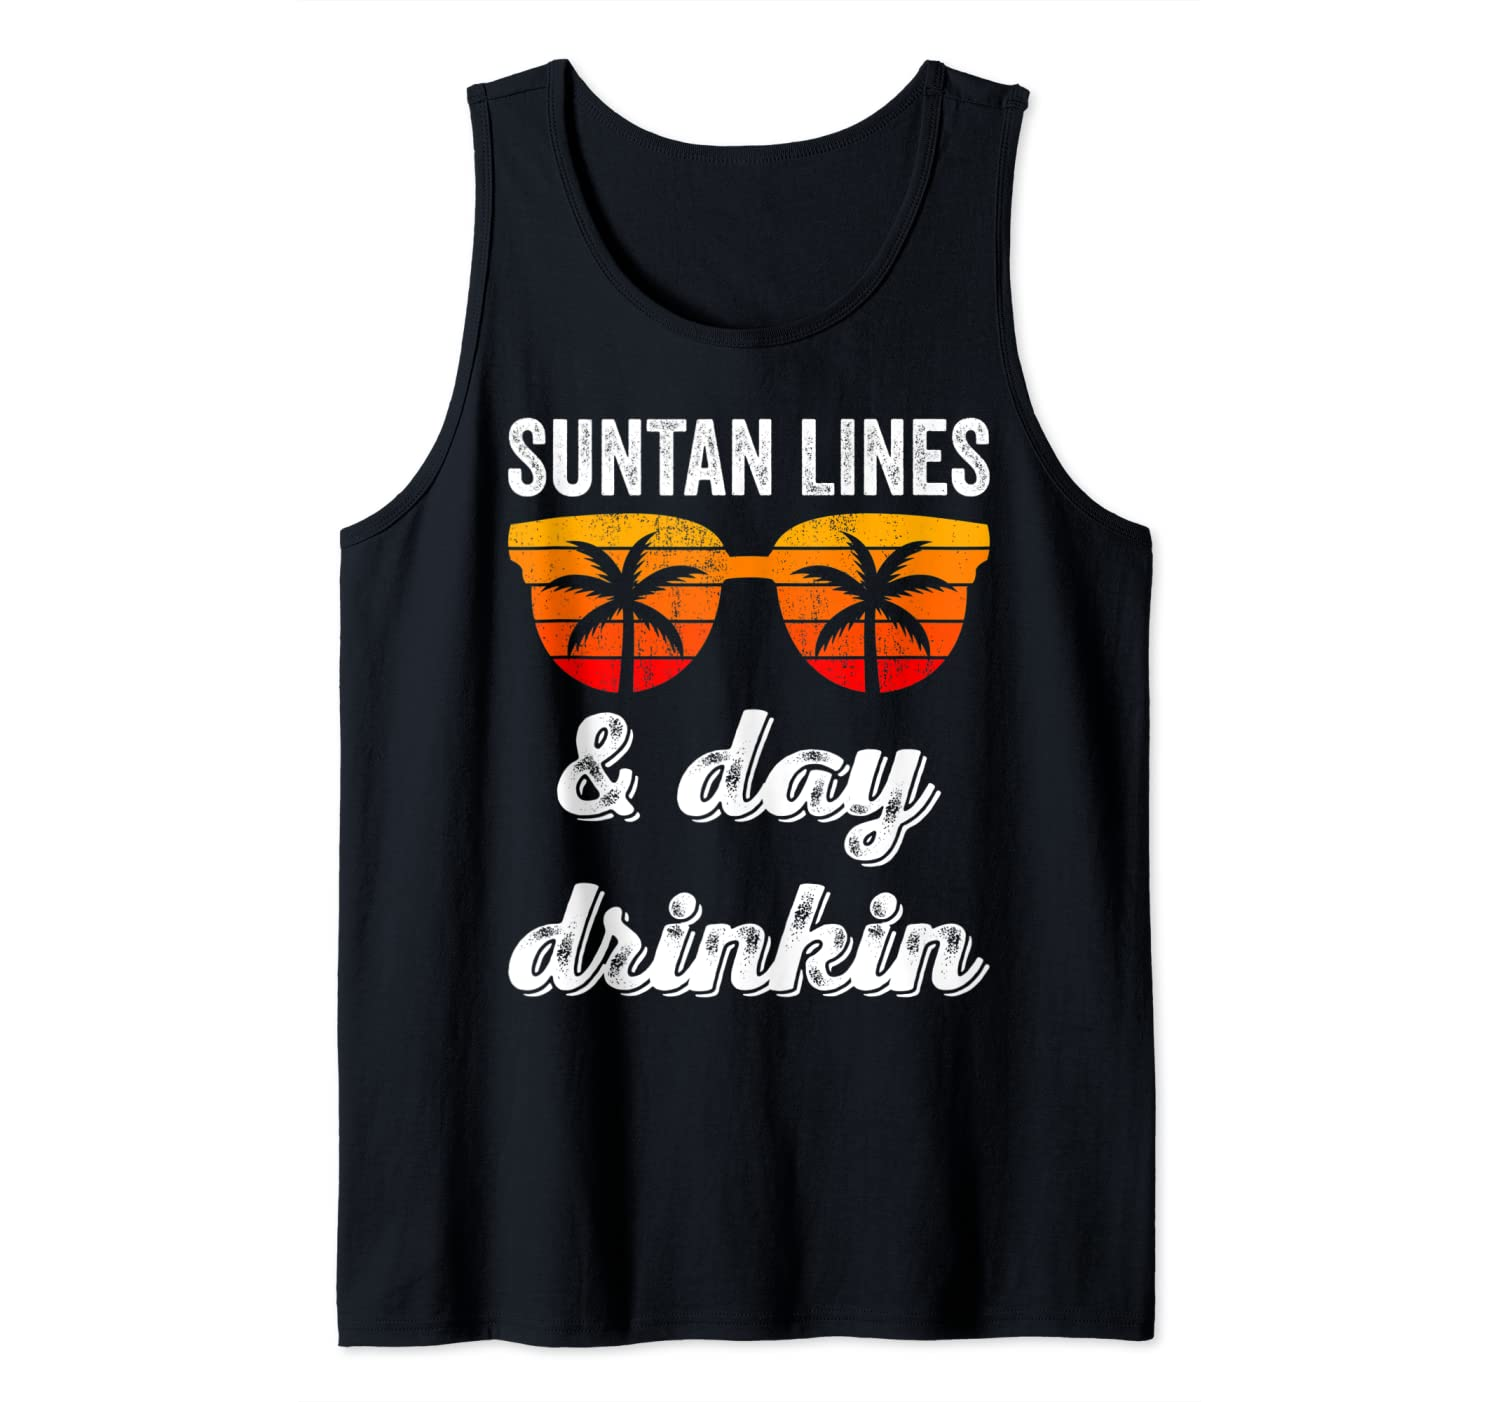 Suntan Lines And Day Drinking Tank Top Beach Vacation Summer Tank Top